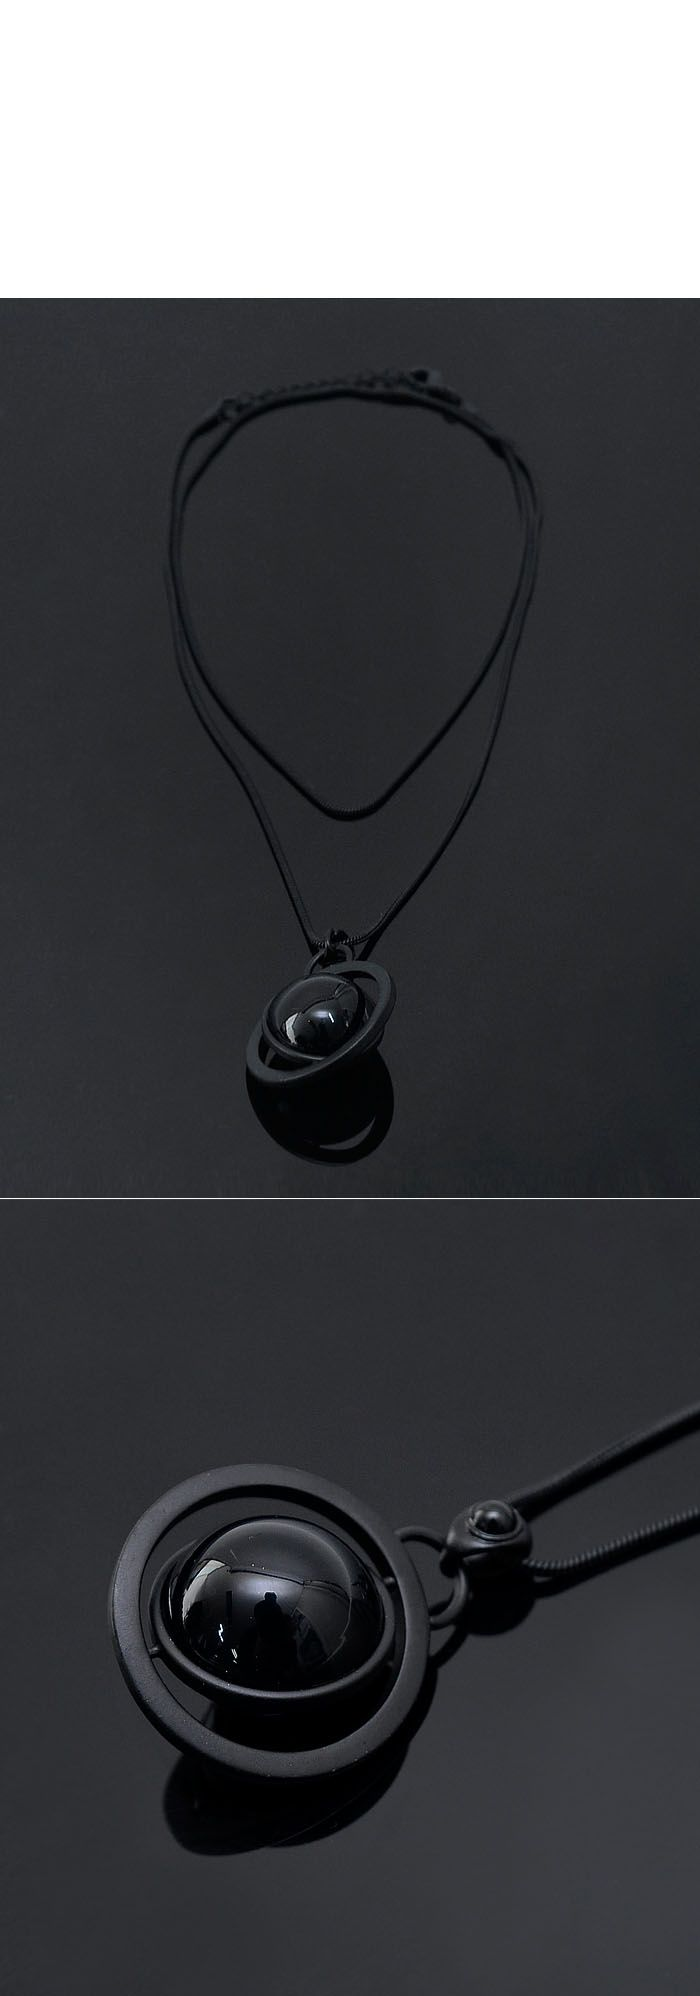 Accessories :: Necklaces :: Unique Spinning Circle Space-Necklace 180 - Mens Fashion Clothing For An Attractive Guy Look